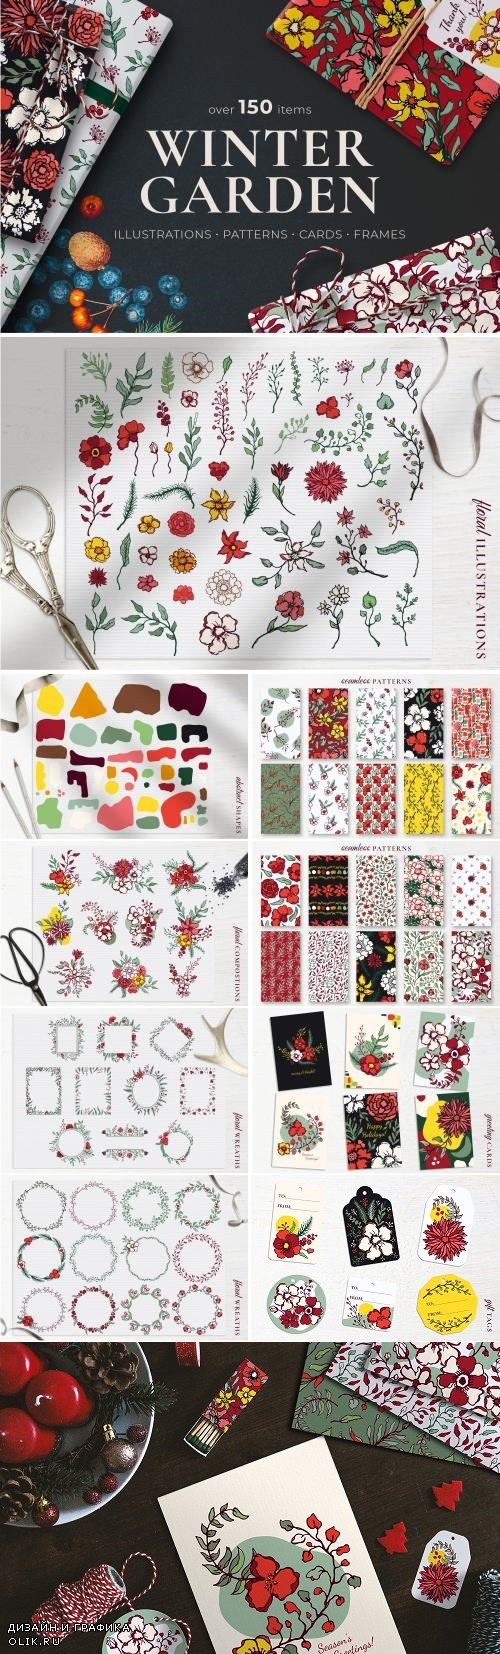 Winter Floral Patterns & Elements 4349281